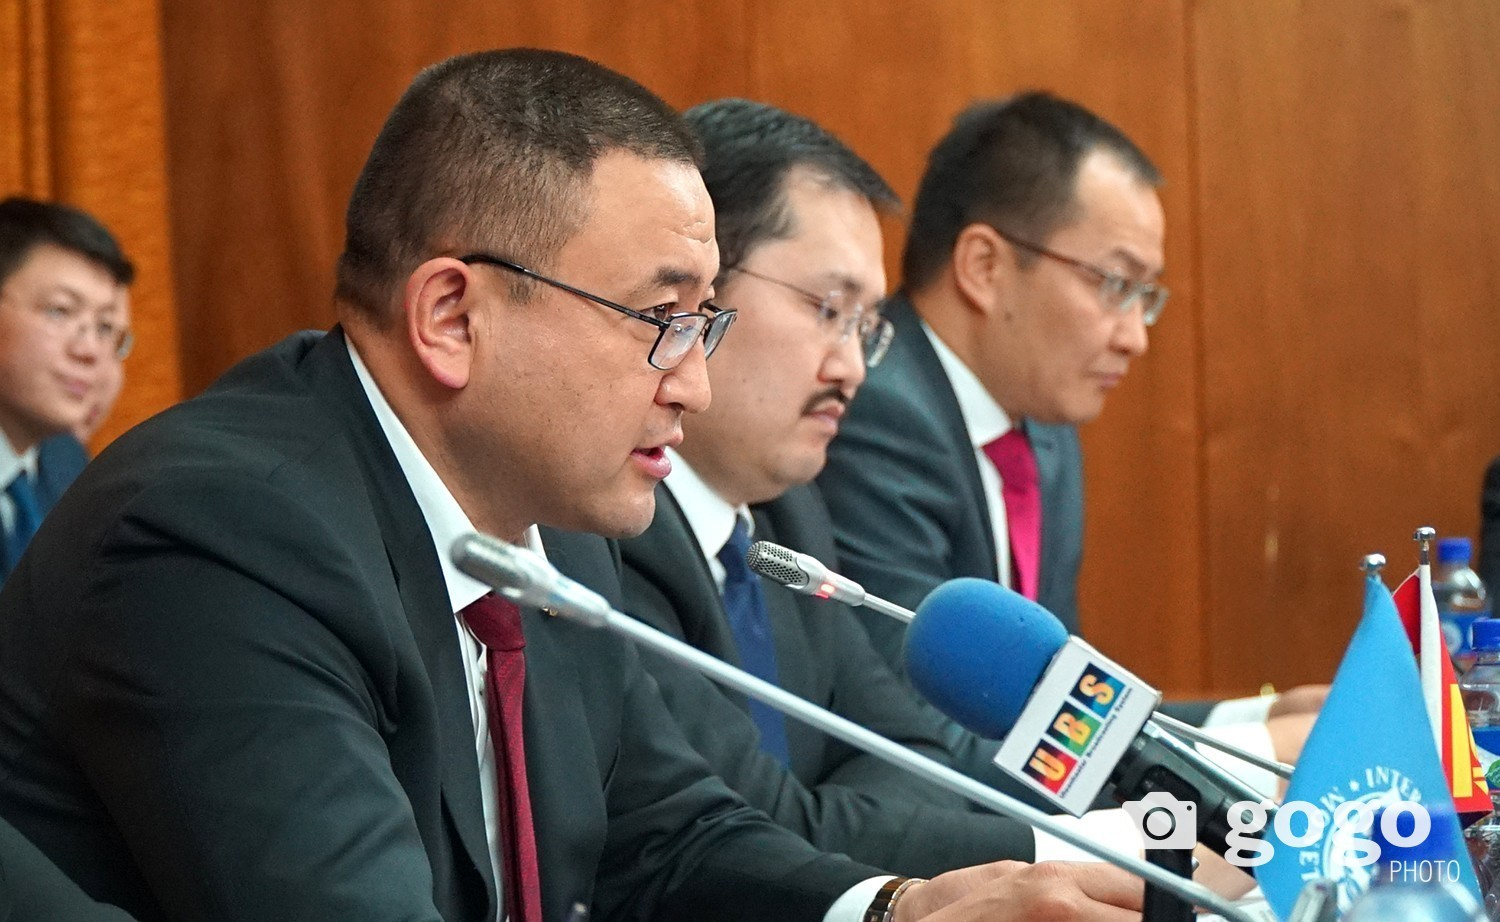 Of mongolia today tomorrow and the development bank of mongolia s - Debt Drama It Has Been Half A Year Since Mongolia Nearly Became Insolvent Due To Its Debt 2017 03 03 2 1